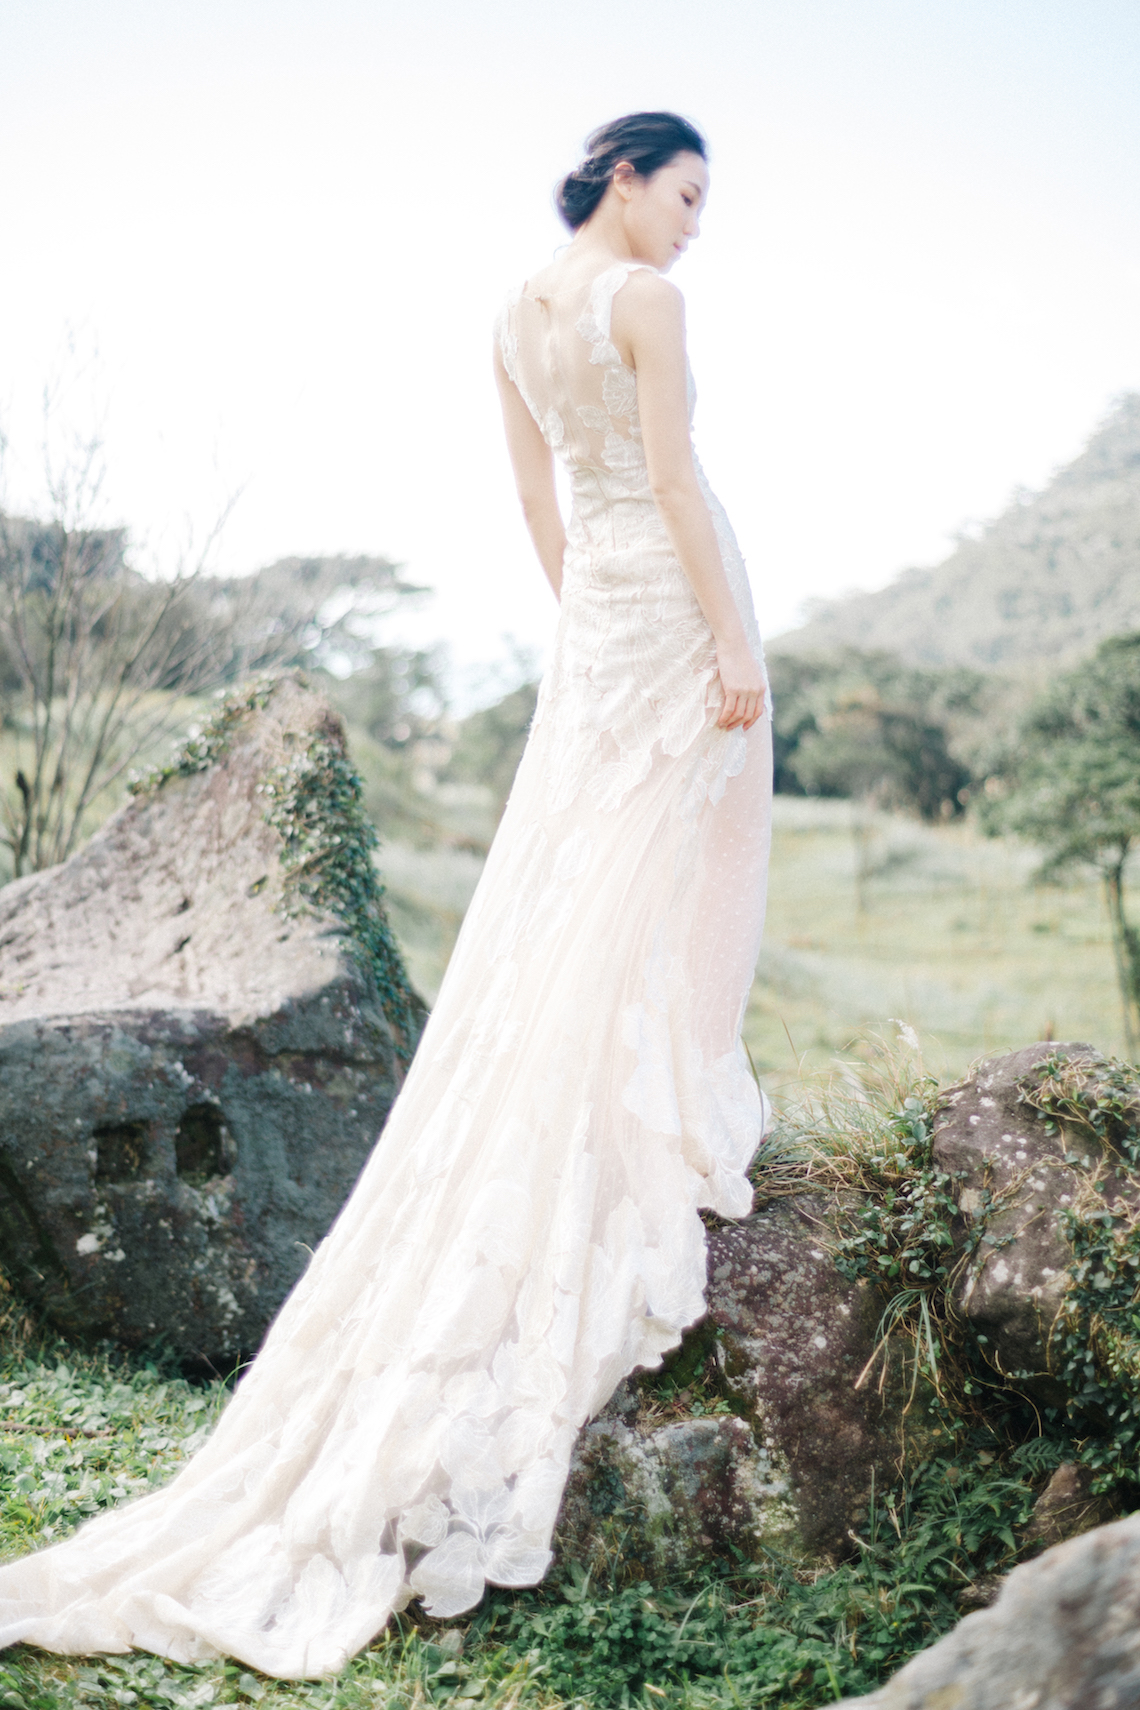 Whimsical Meadow Wedding Inspiration With Dried Florals | Olea & Fig Studio | The Stage Photography 5